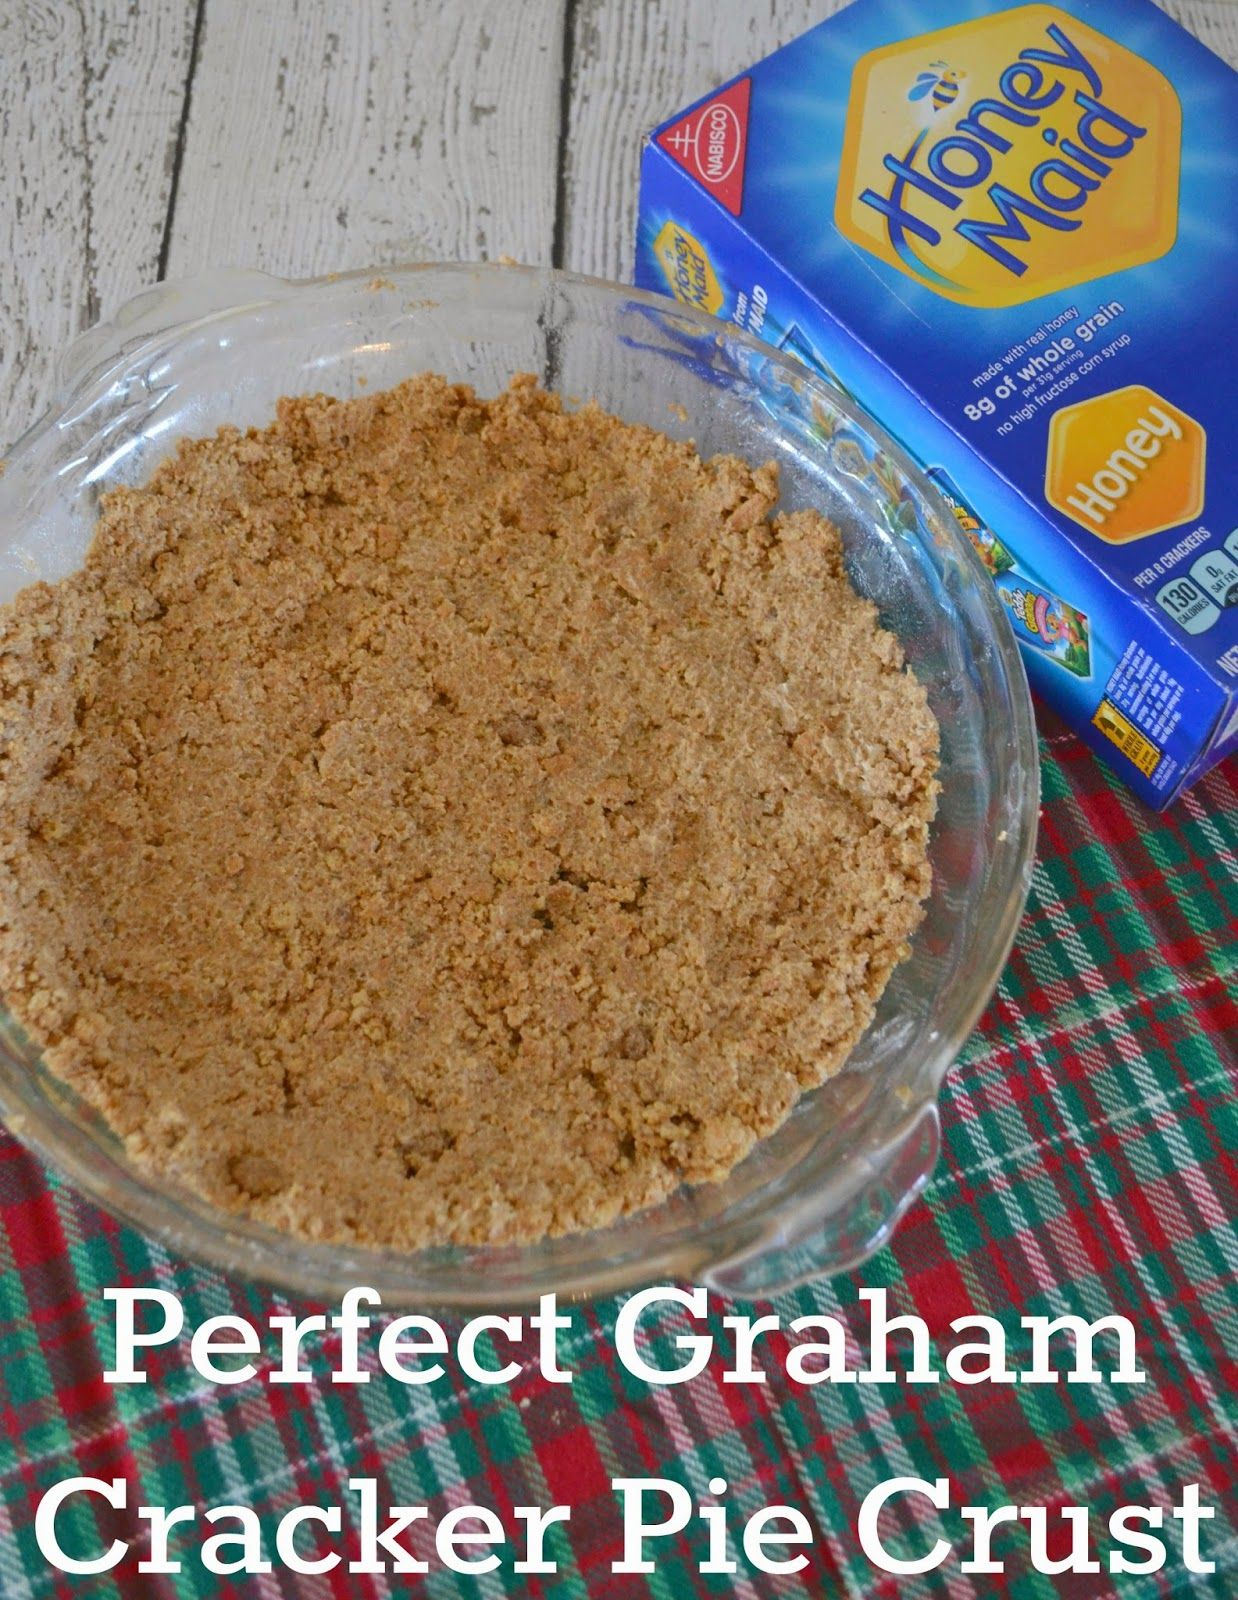 Peanut Butter Jelly Pie Recipe With Honey Maid Graham Crackers Honey Maid Graham Crackers Graham Cracker Recipes Honey Maid Graham Cracker Crust